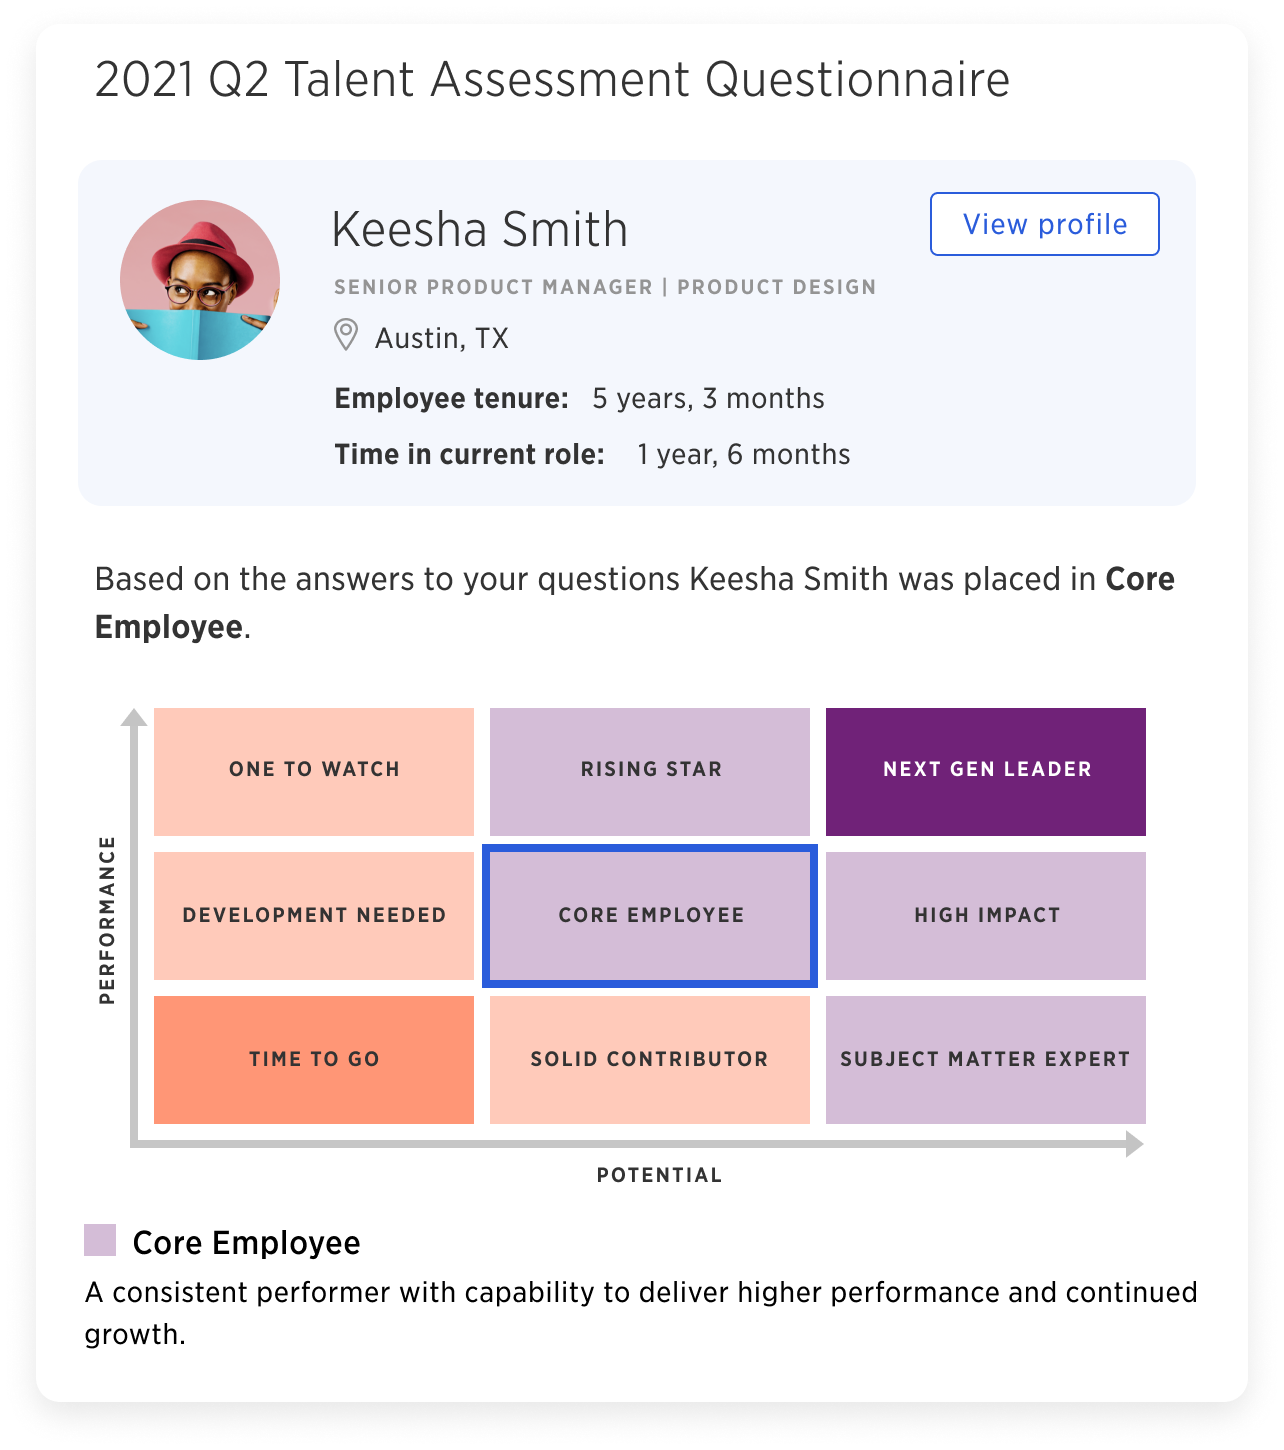 Identify high-potential employees, enable proactive leadership development, and build data-driven succession plans with Kazoo's evaluation and segmentation tools.